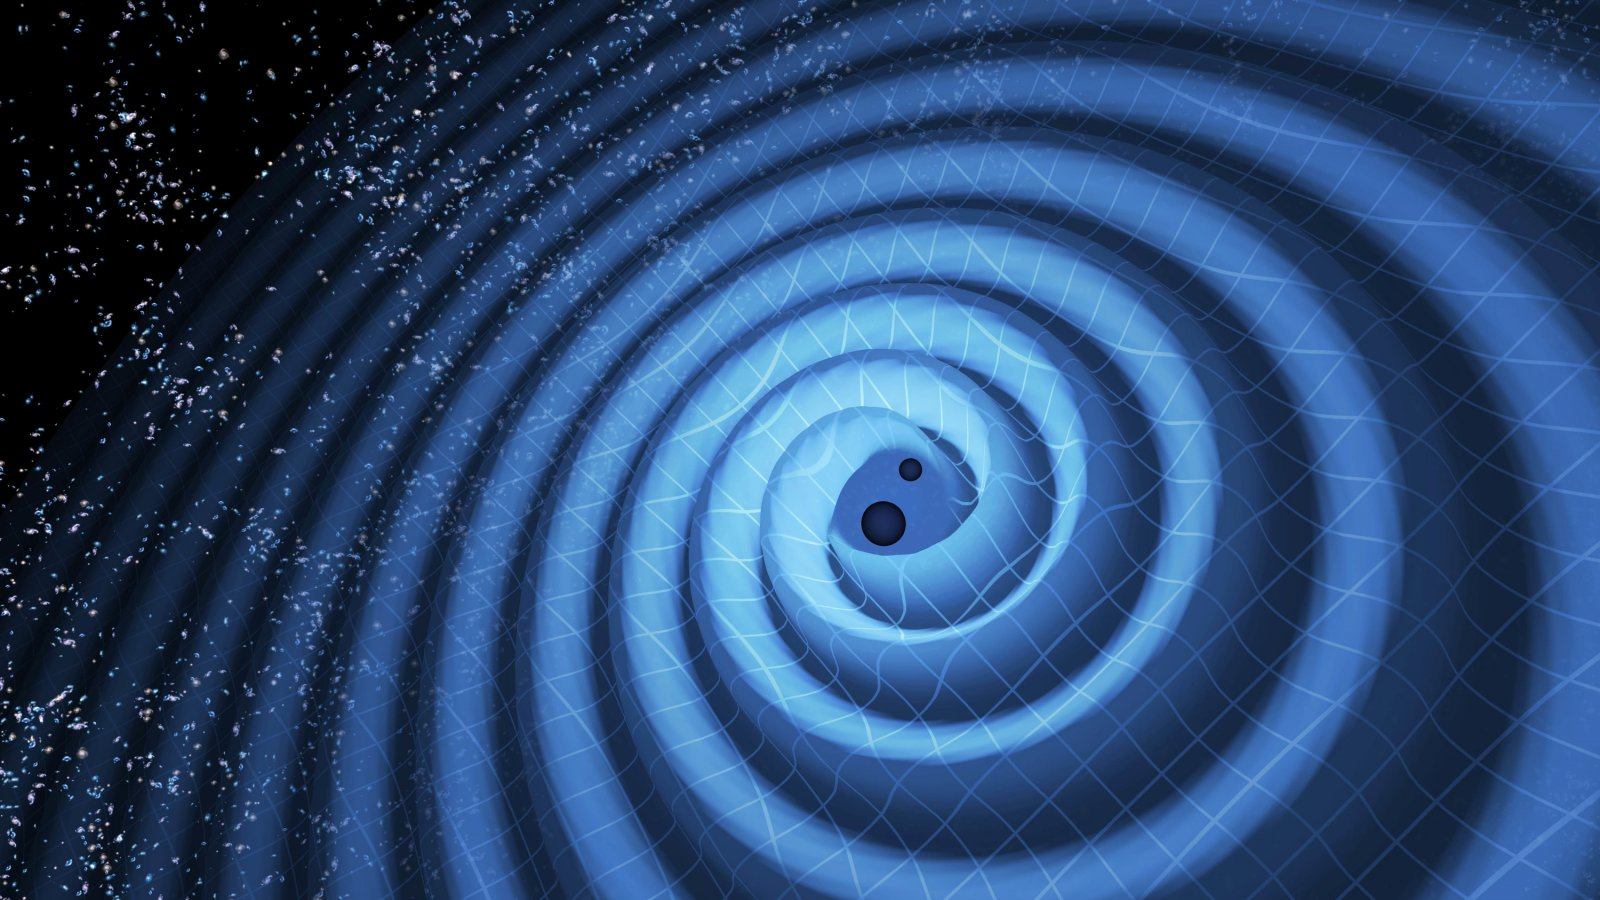 Gravity Waves StillImage